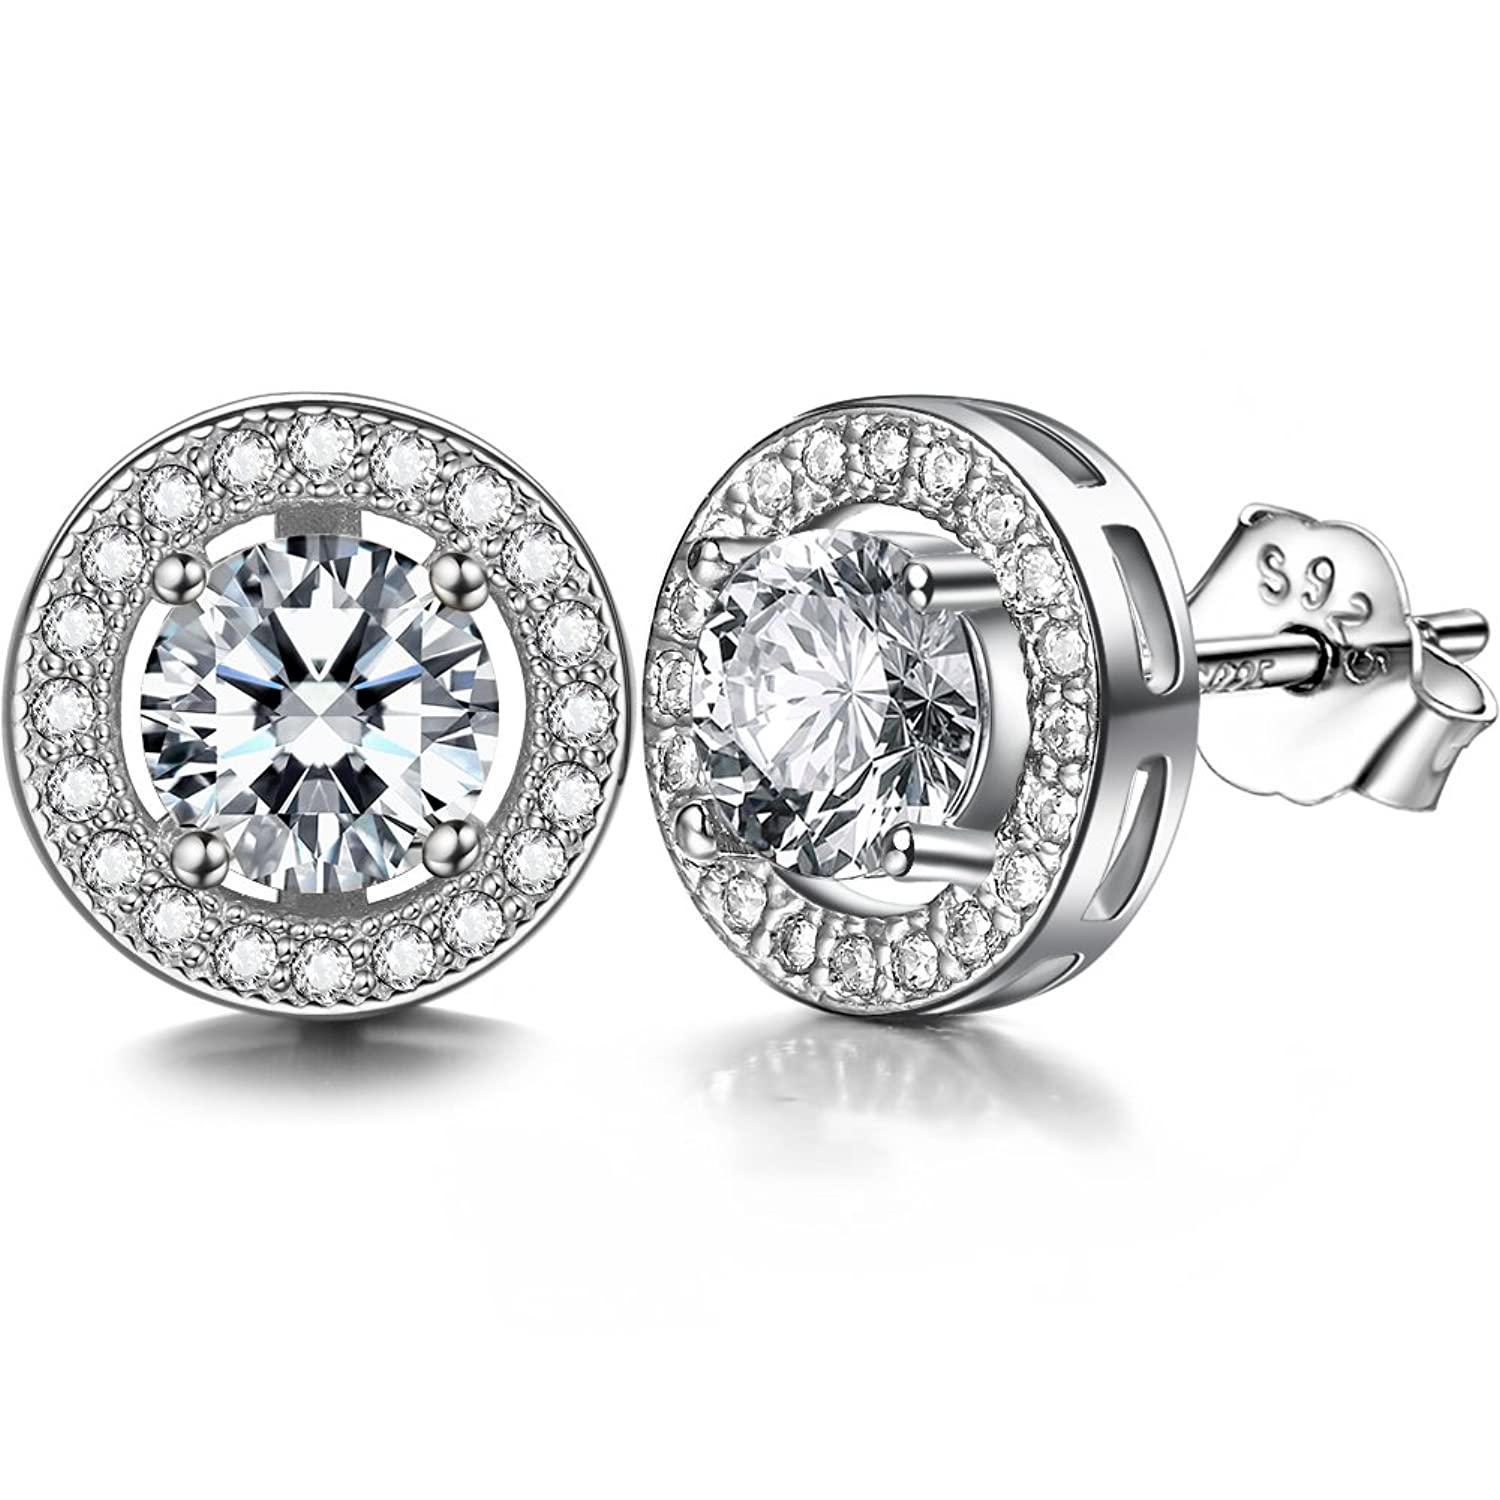 78017e0b0 Amazon.com: ZENI 925 Silver Women Stud Earrings set 18K White Gold Plated  with 3A 6mm Cubic Zirconia Cushion Shape Halo 1 carats: Jewelry